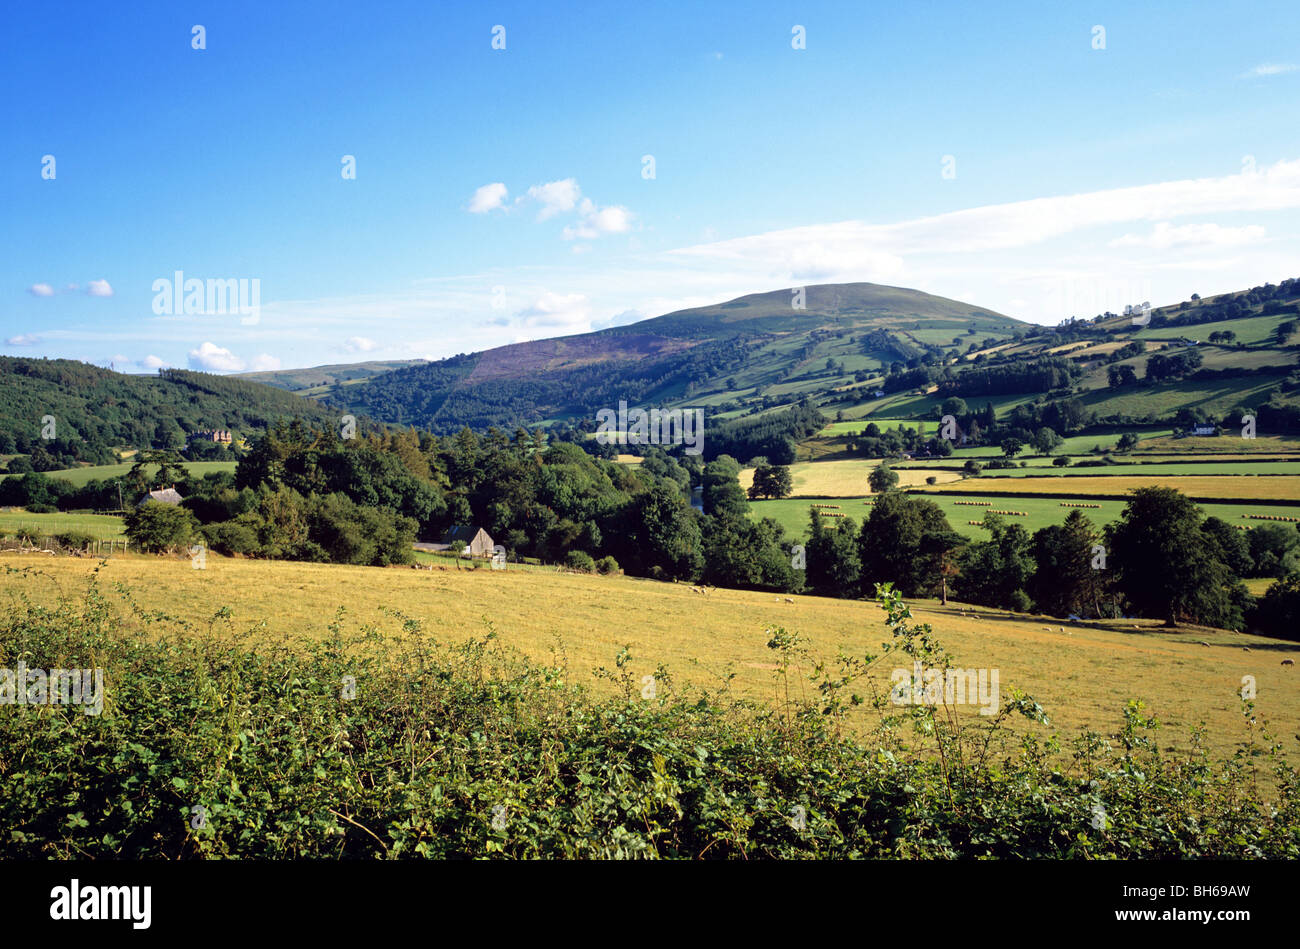 Picturesque village of Talybont-on-Usk on the River Usk set in the Brecon Beacons - Stock Image